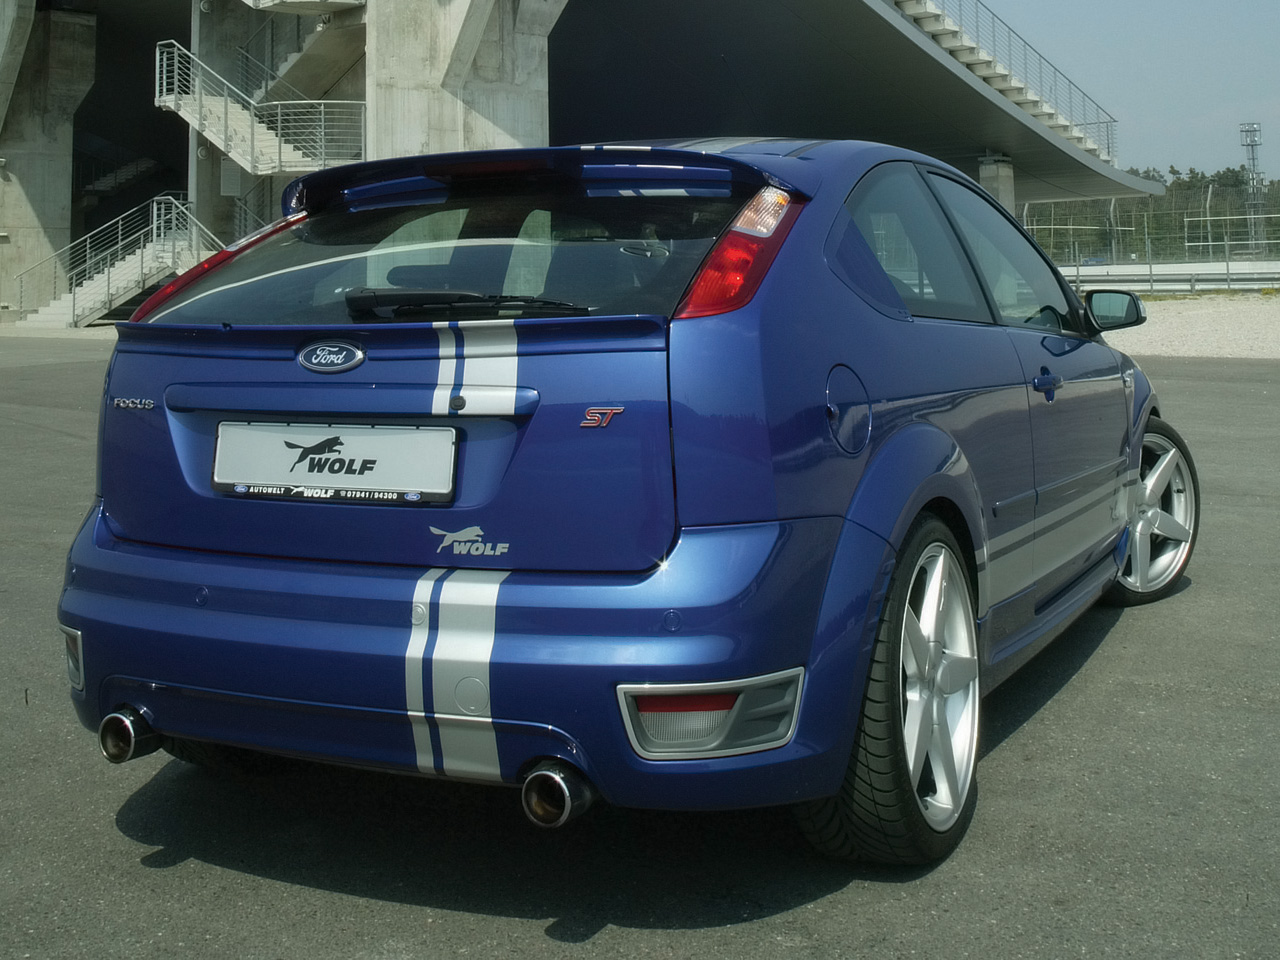 2006 ford focus st from wolf rear 1280x960 jpg